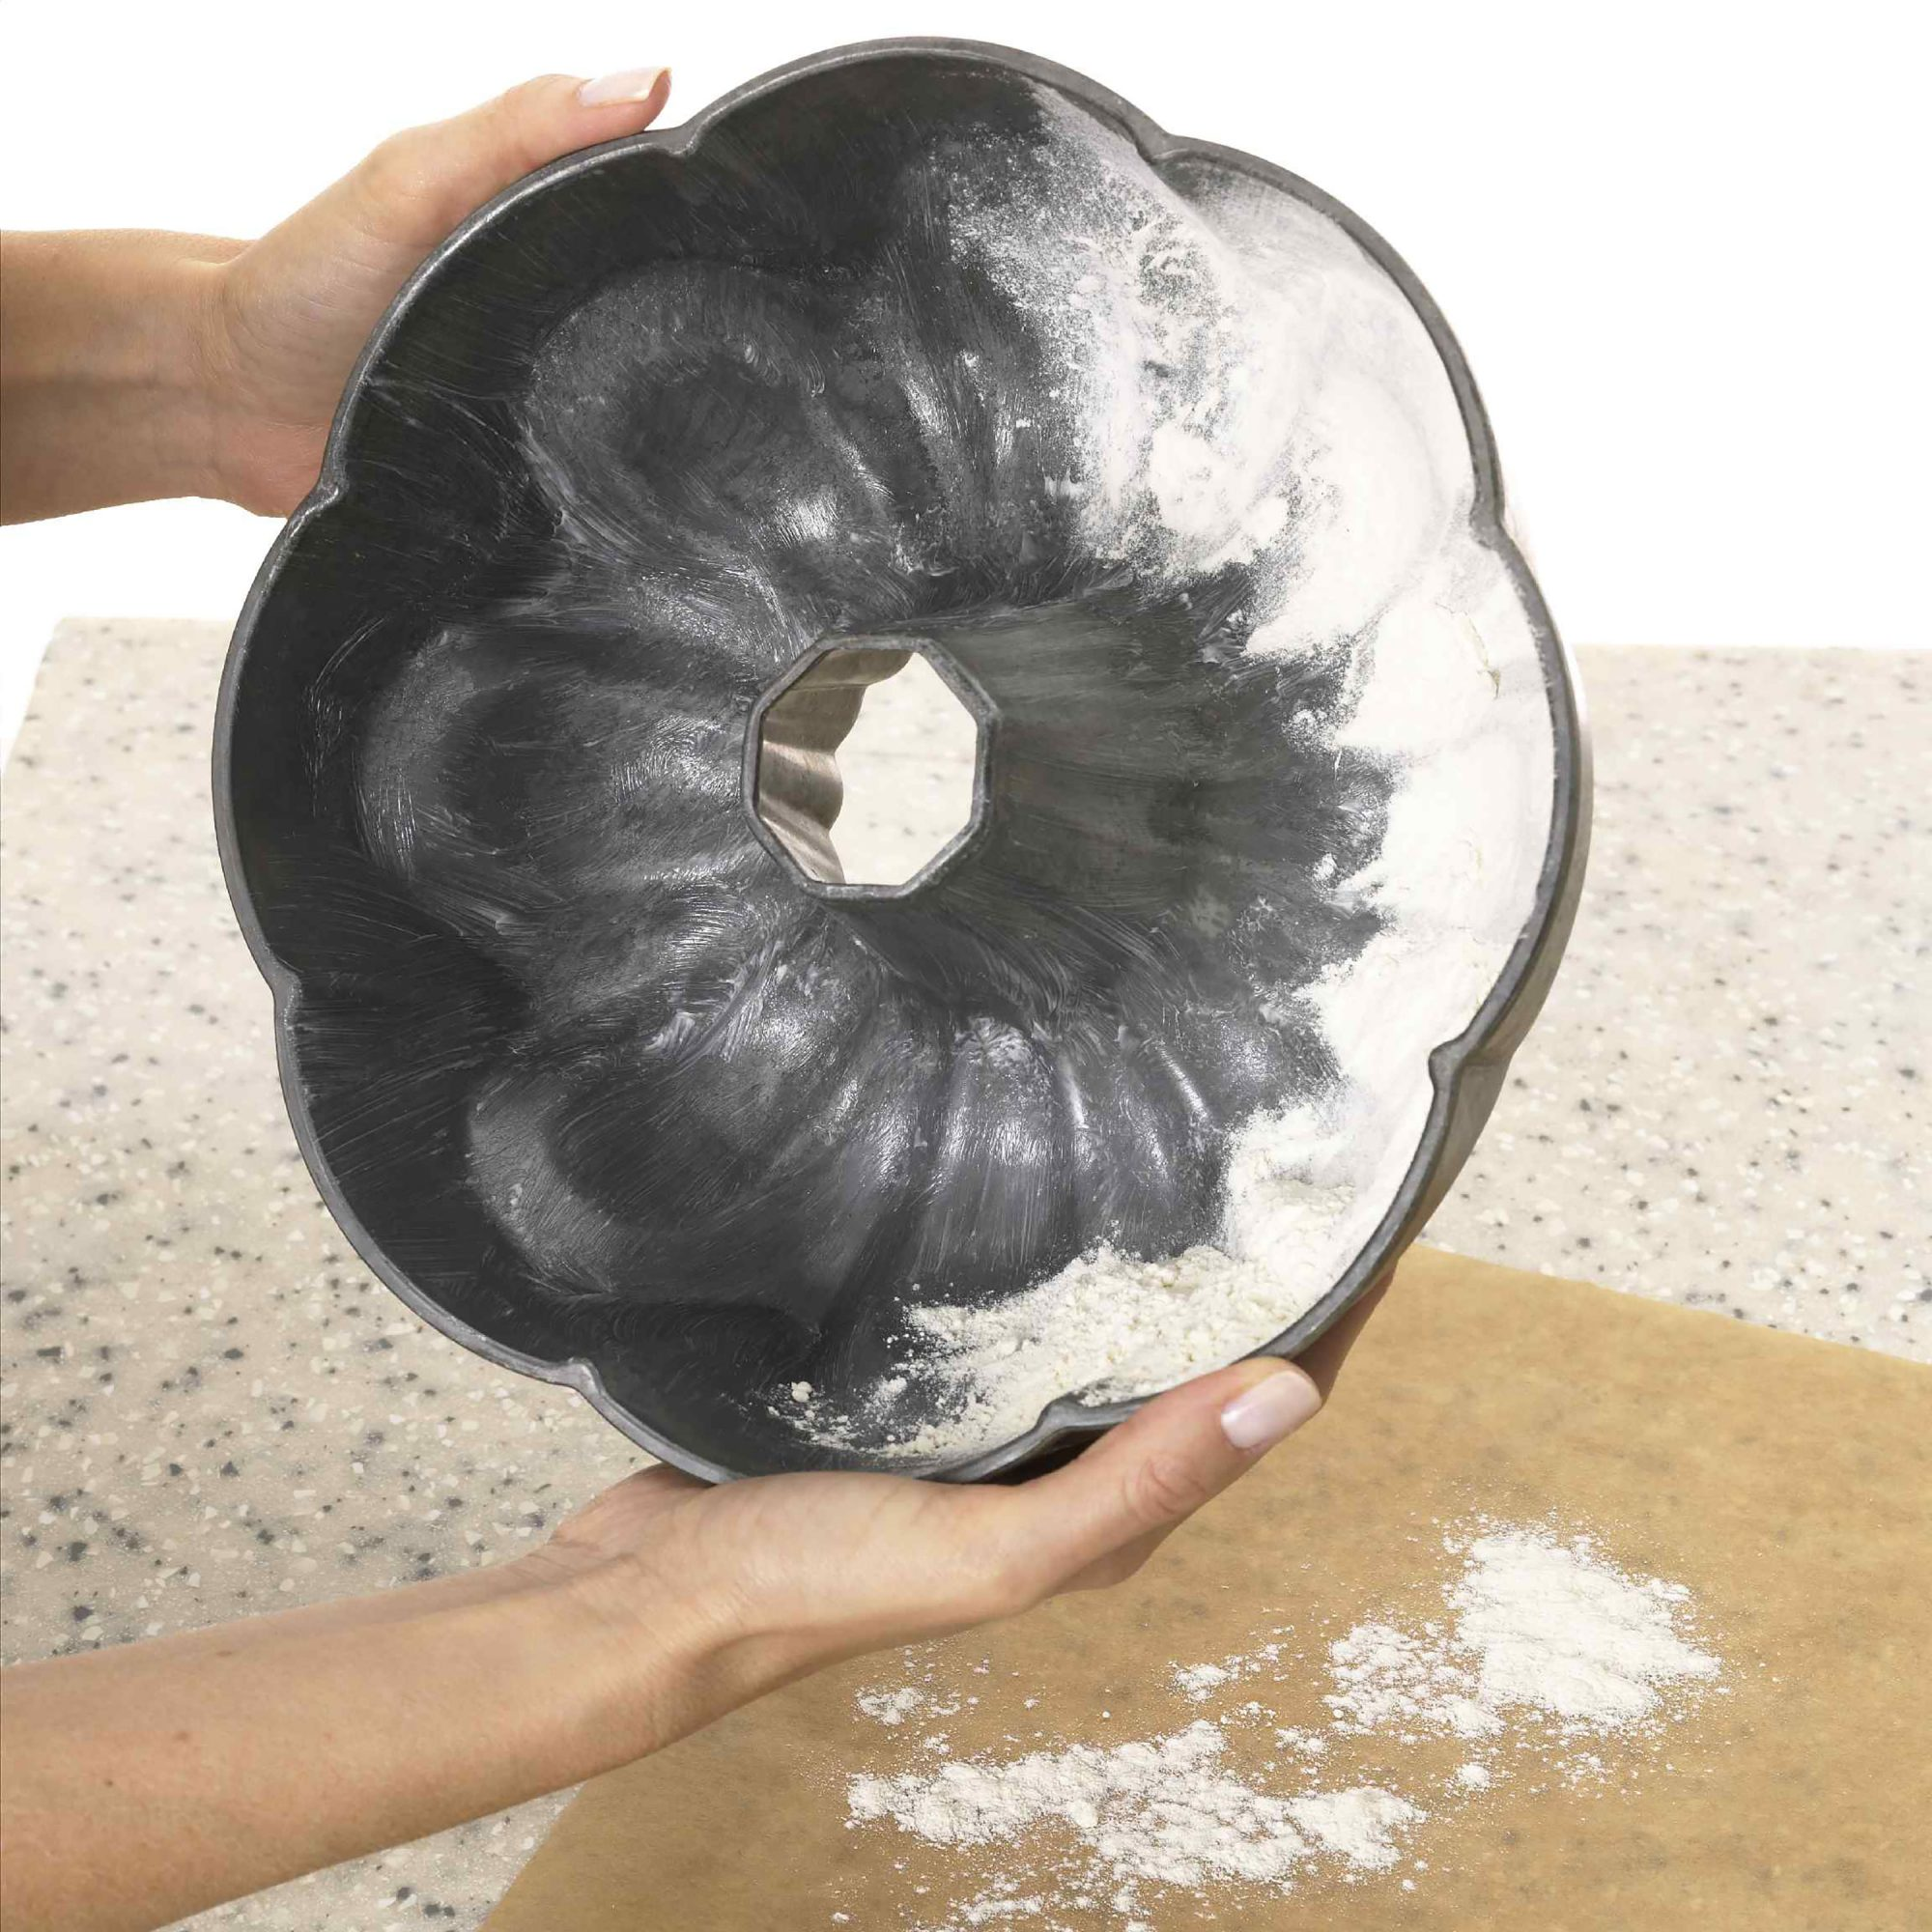 person flouring bundt pan